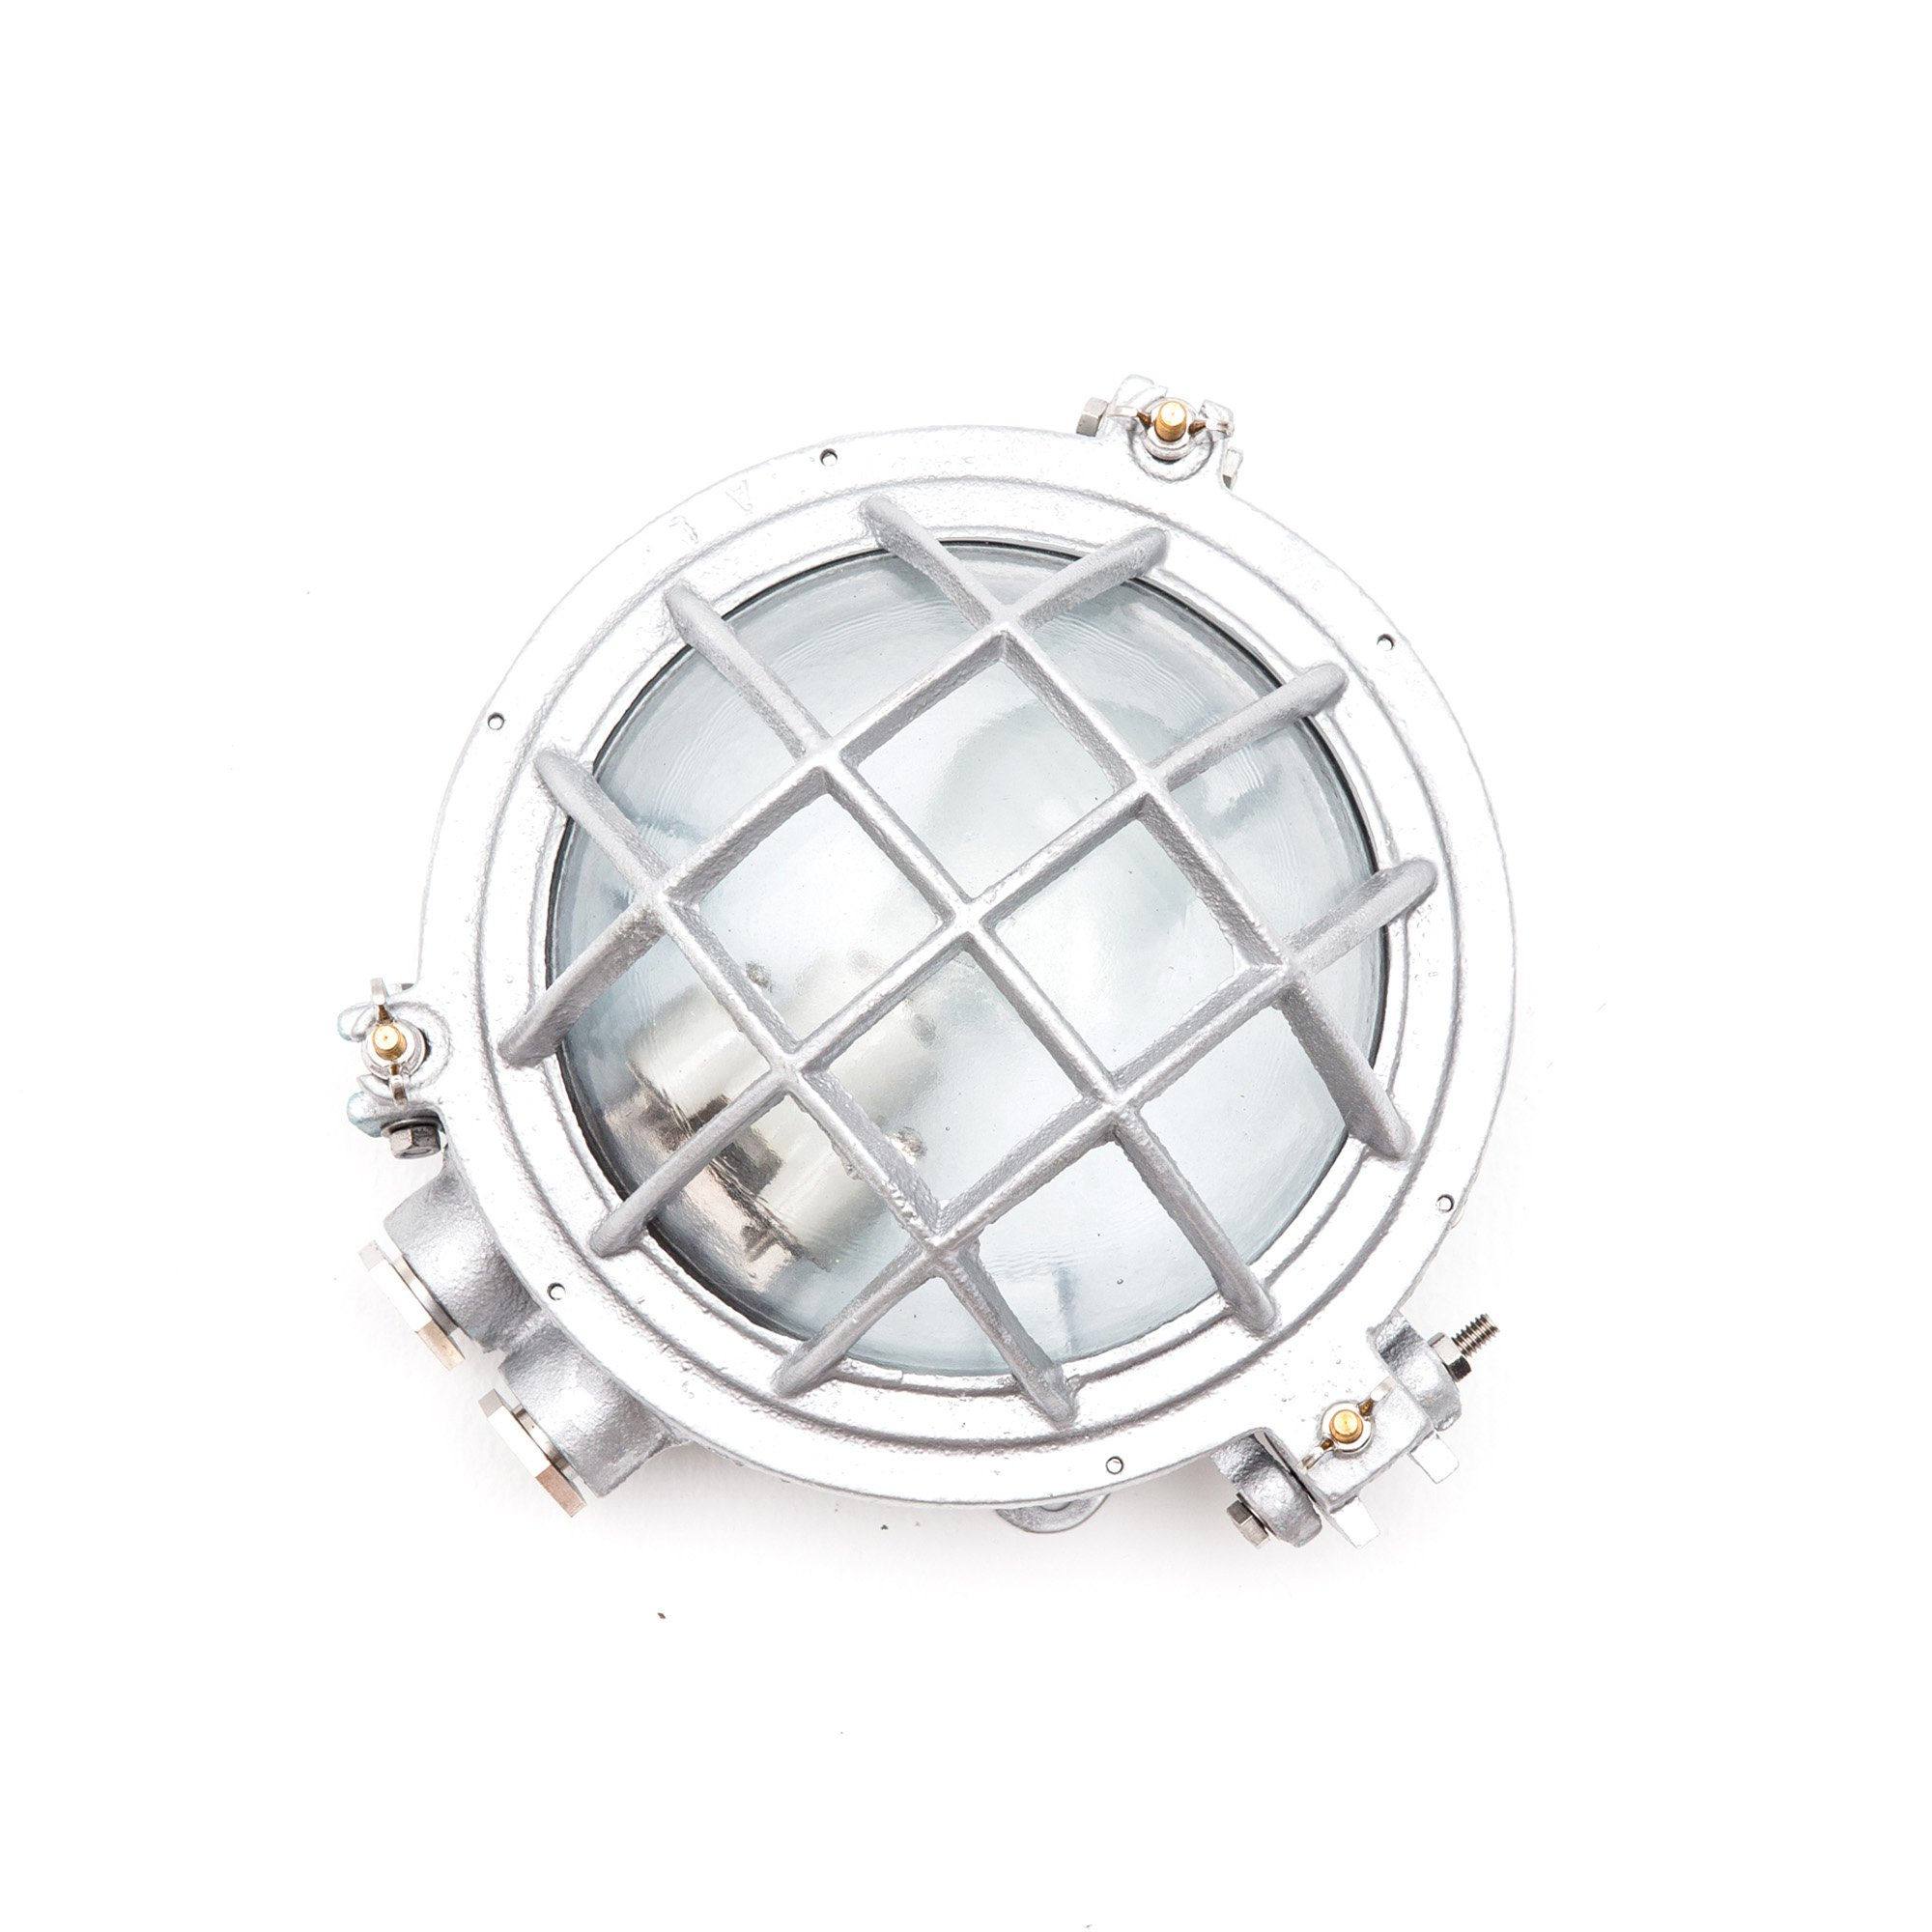 Cocoweb Temora Bulkhead Wall Sconce | LED Light Bulb Included | with Exposed Hardware Cage Design … (Silver) by Cocoweb